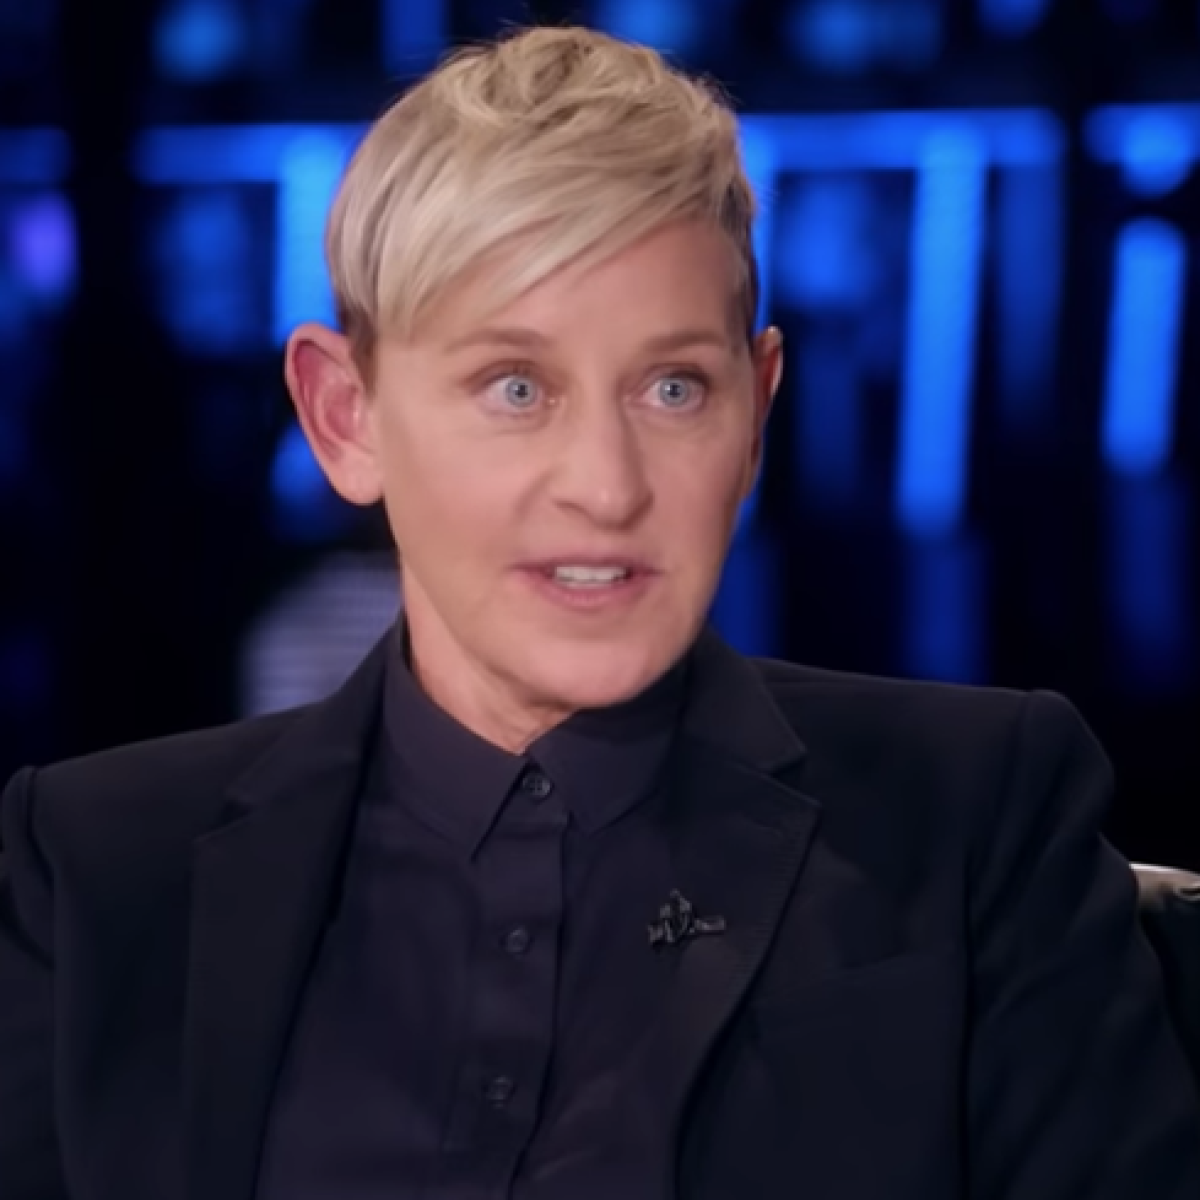 Ellen DeGeneres receives flak for joking about coronavirus